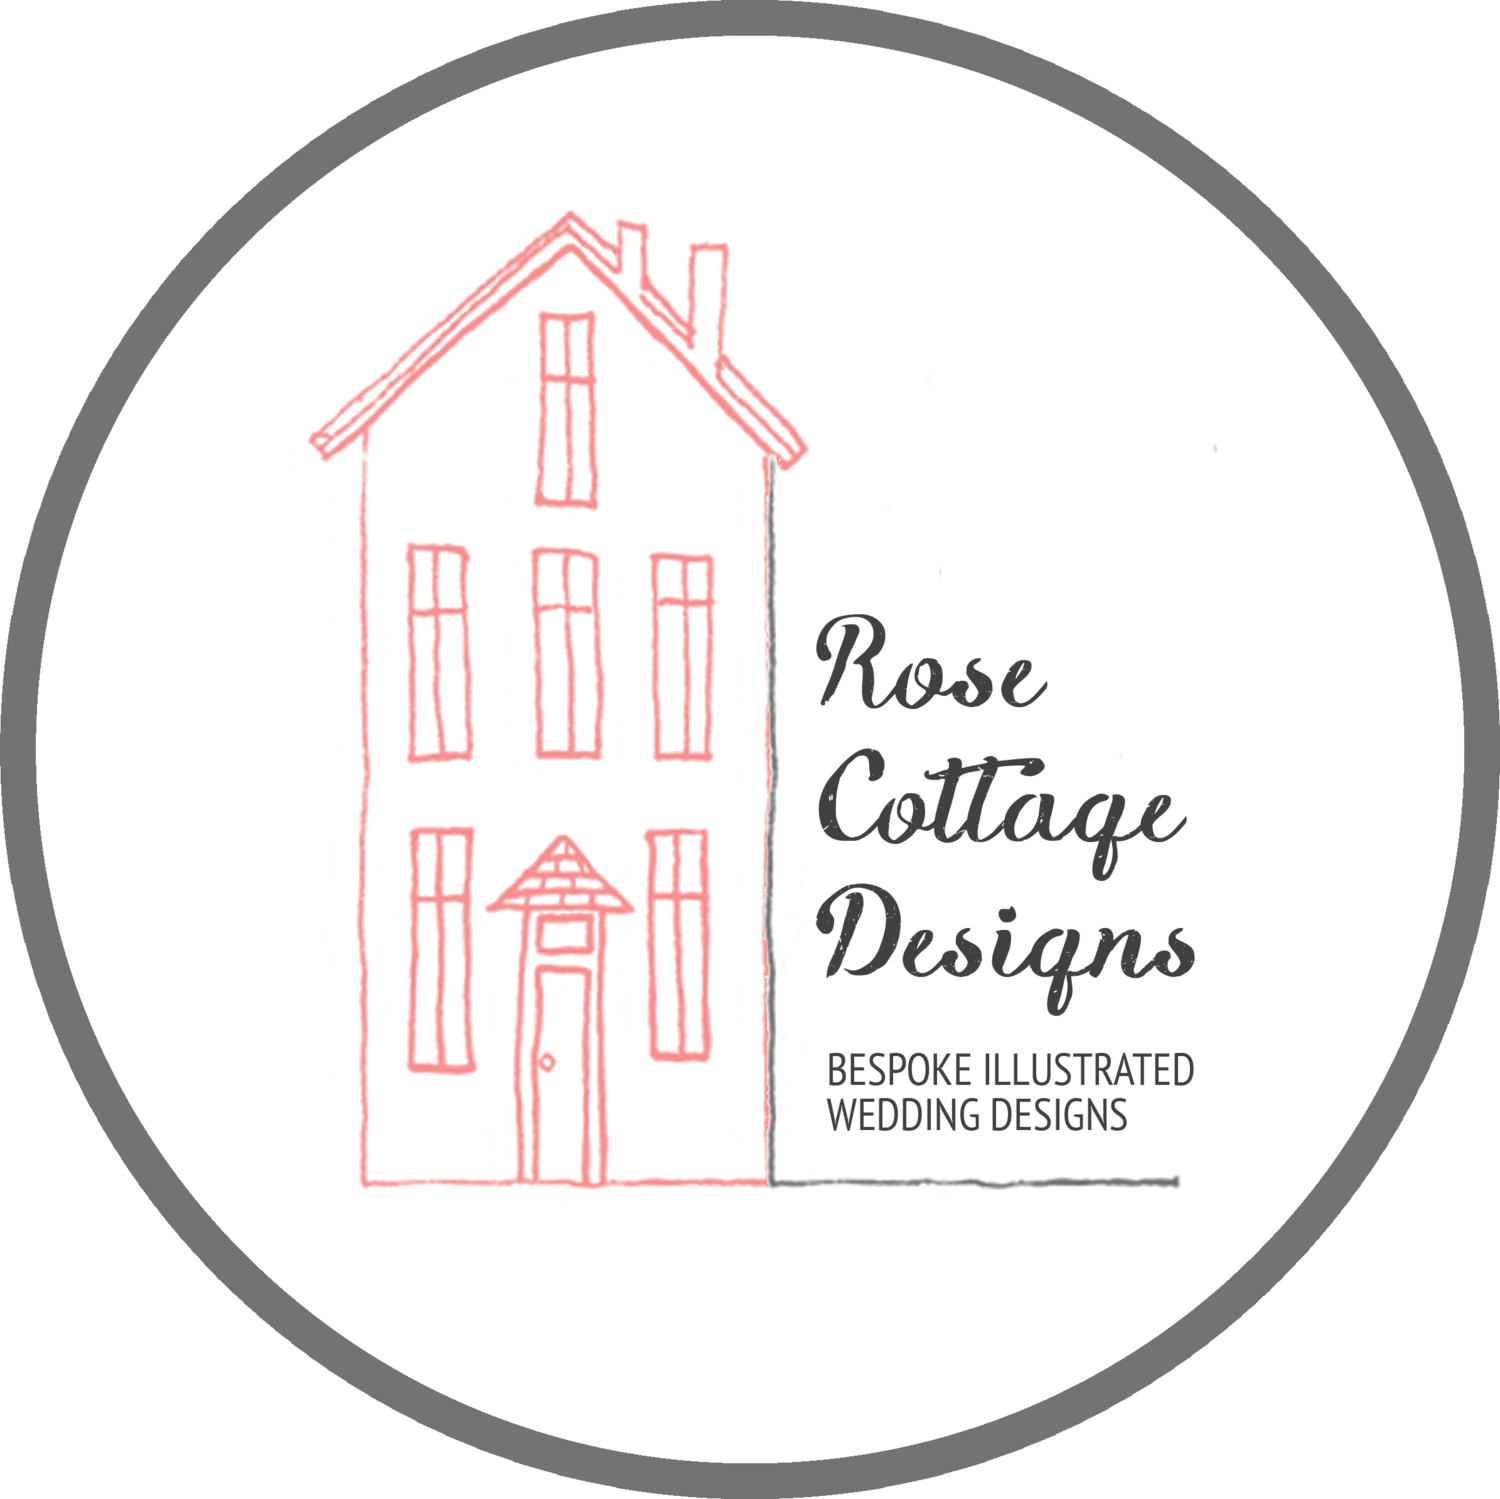 Rose Cottage Designs